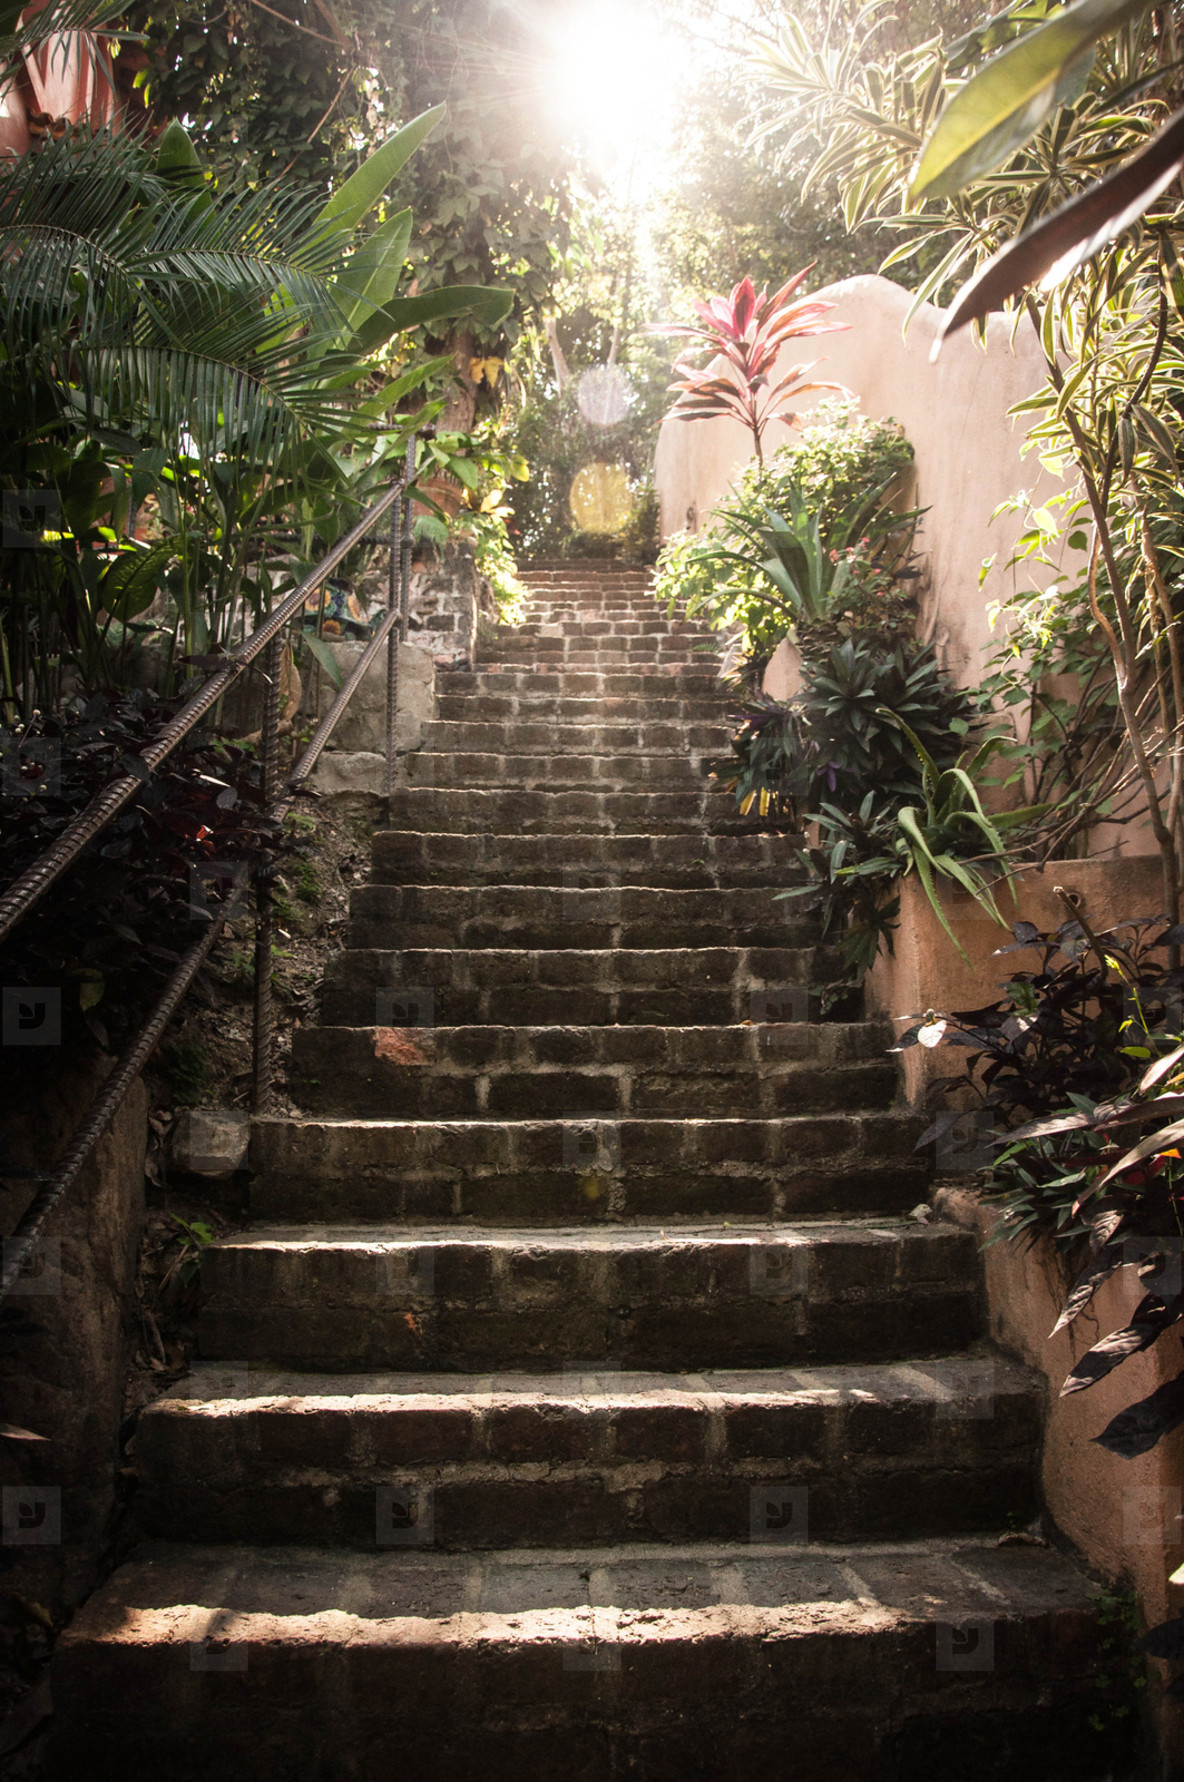 Stairs in Mexico